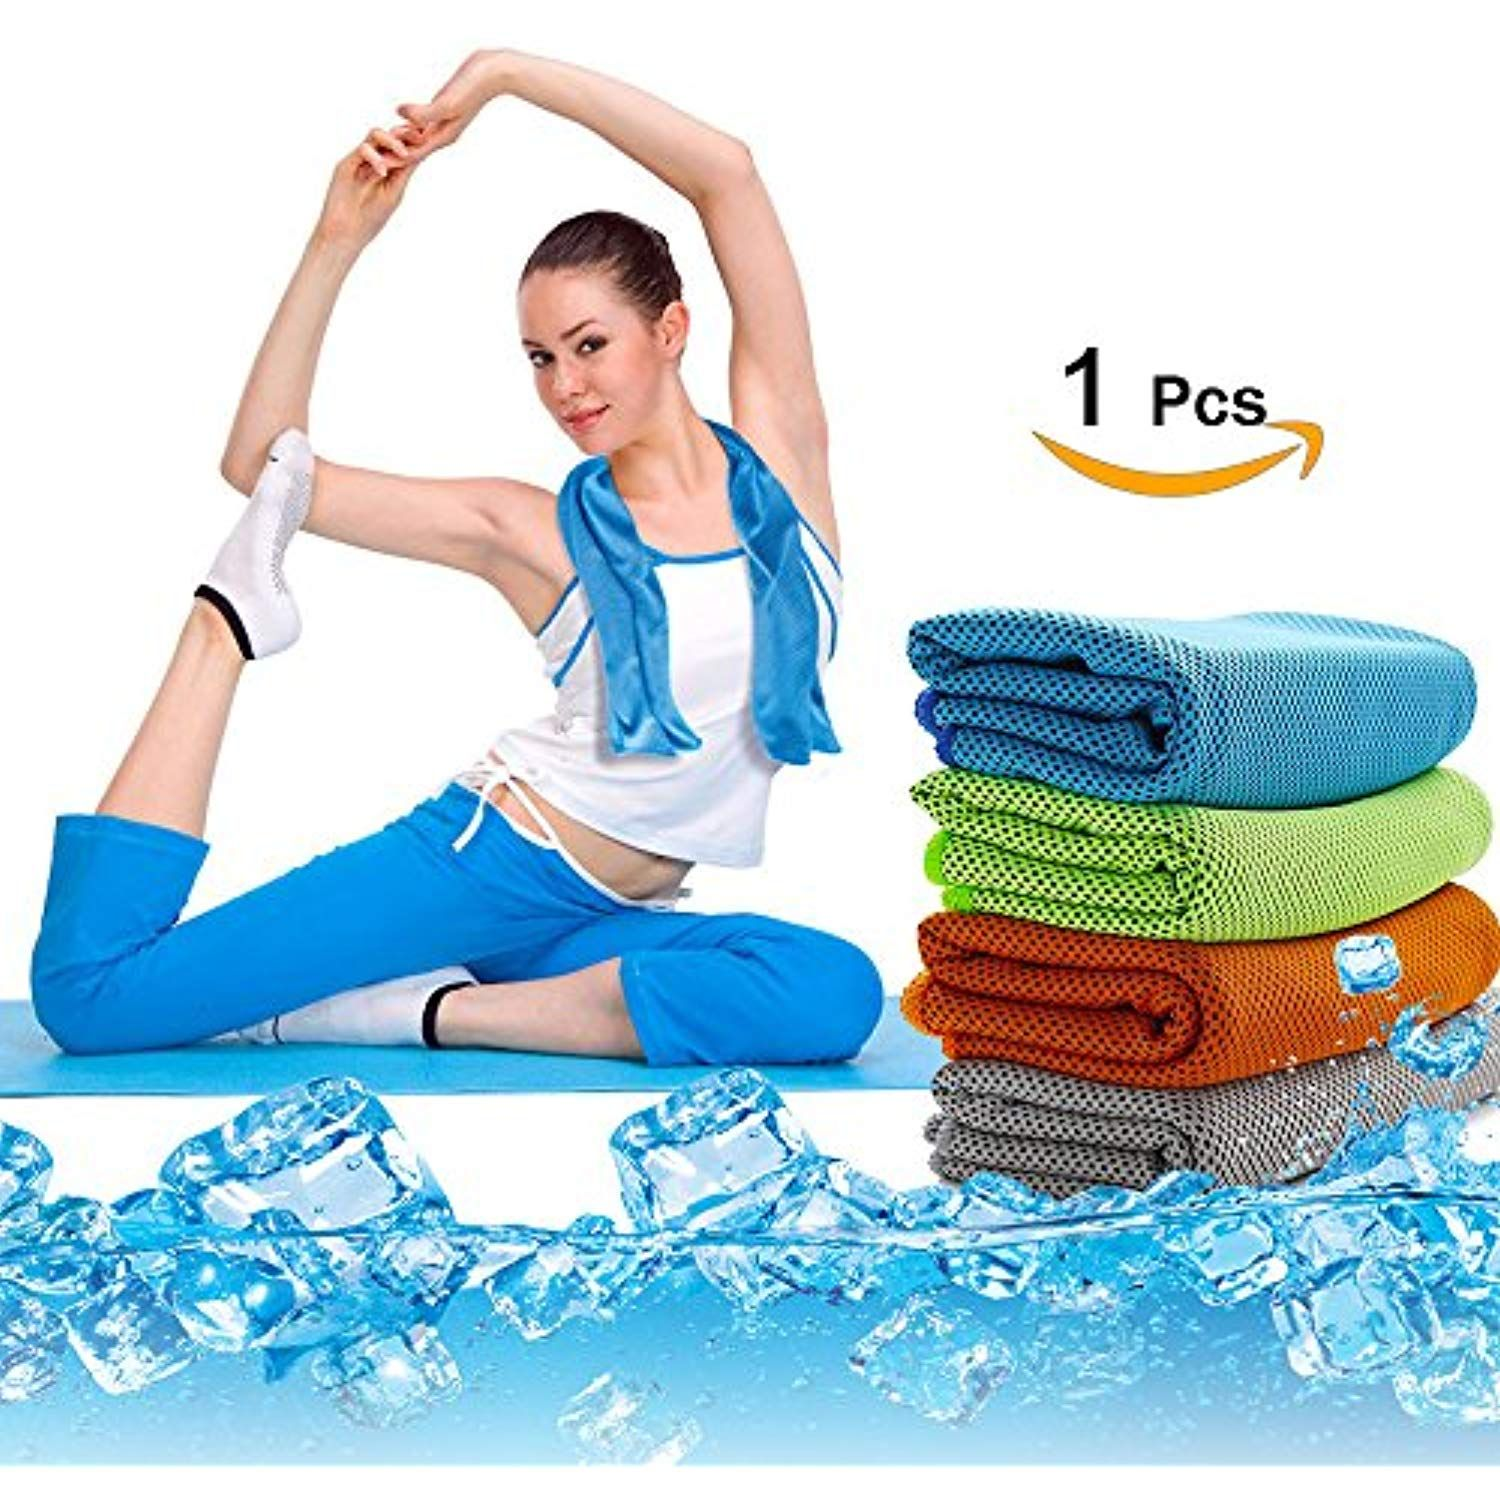 Sealive Yoga Mat Towel Cooling Towel Super Soft Sweat Absorbent Non Slip Bikram Hot Yoga Towels Microfiber Sp